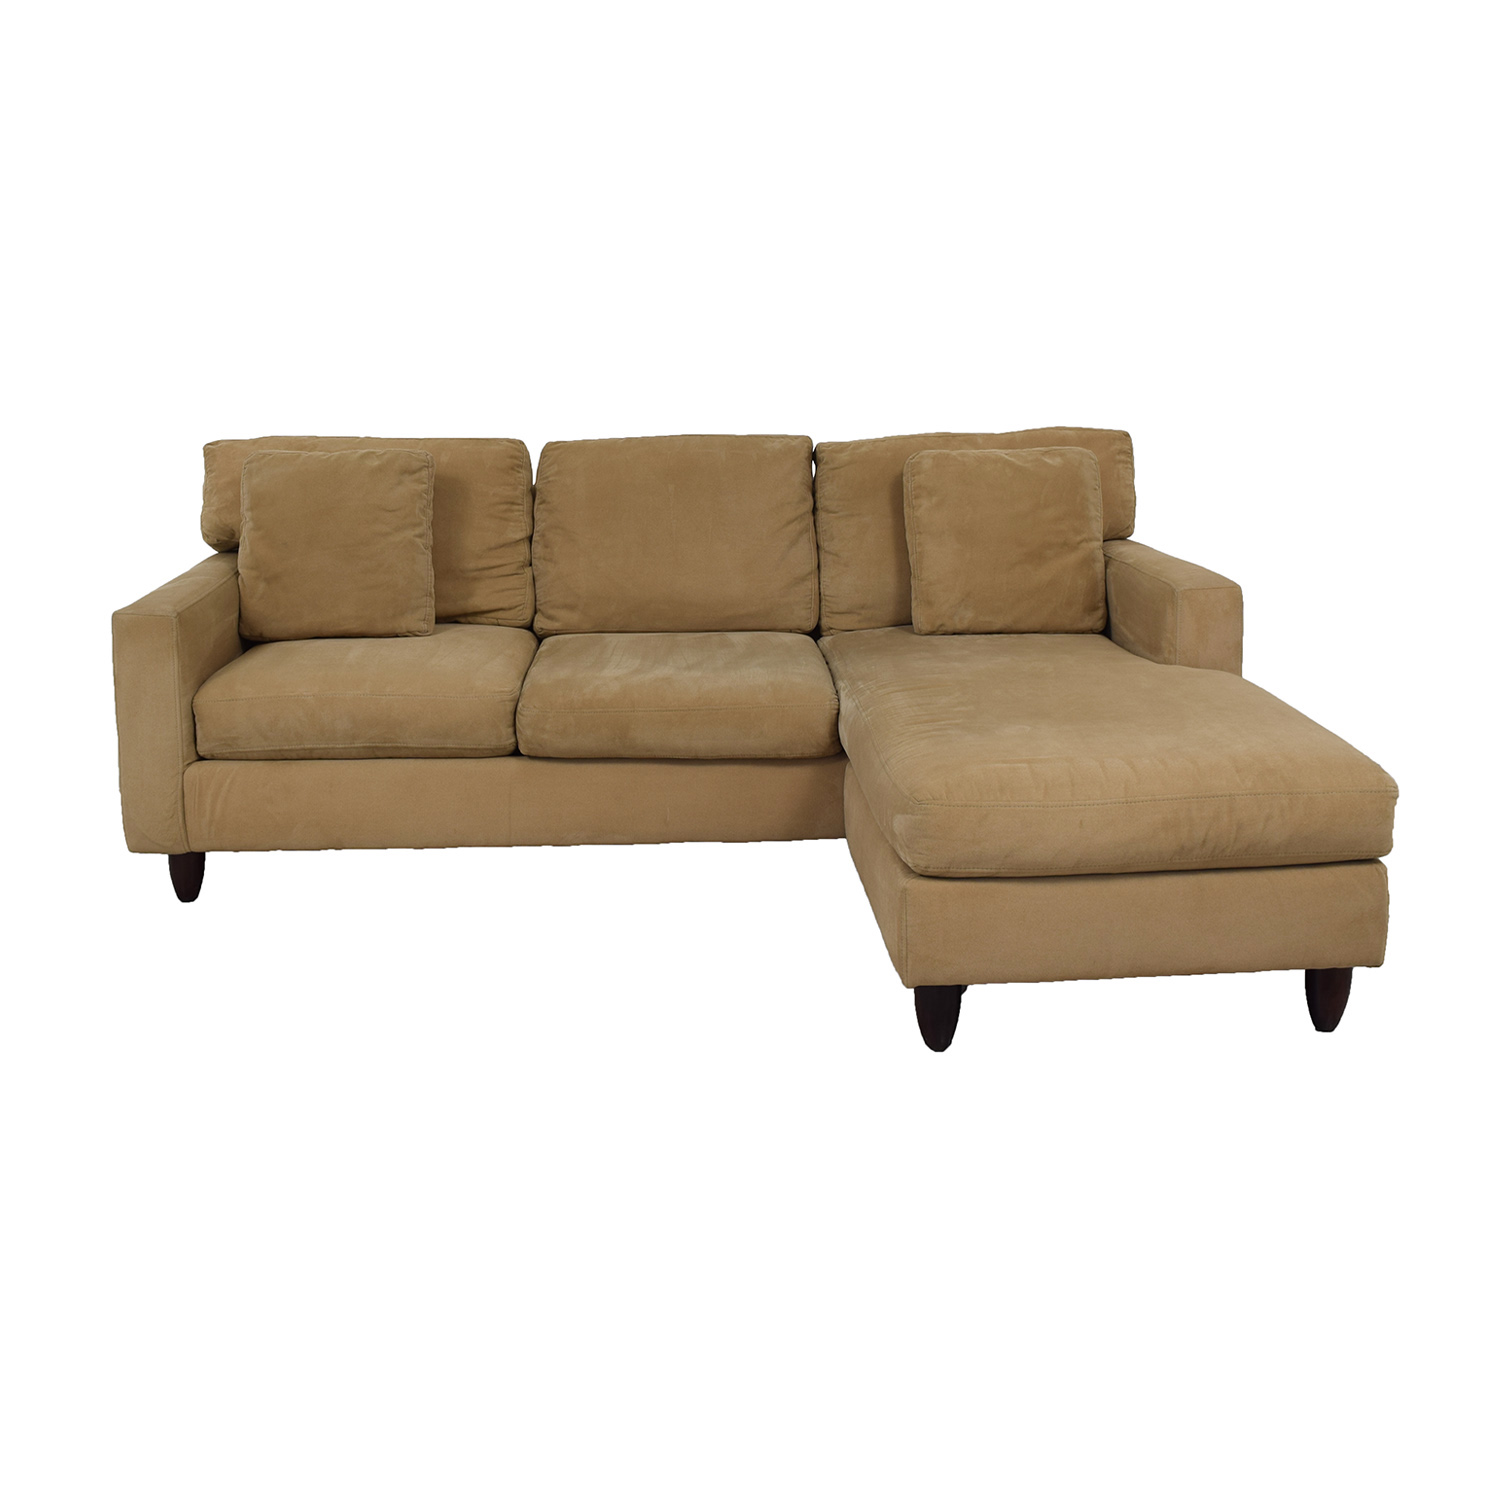 Max Home Max Home Tan Sectional Sofa Beige